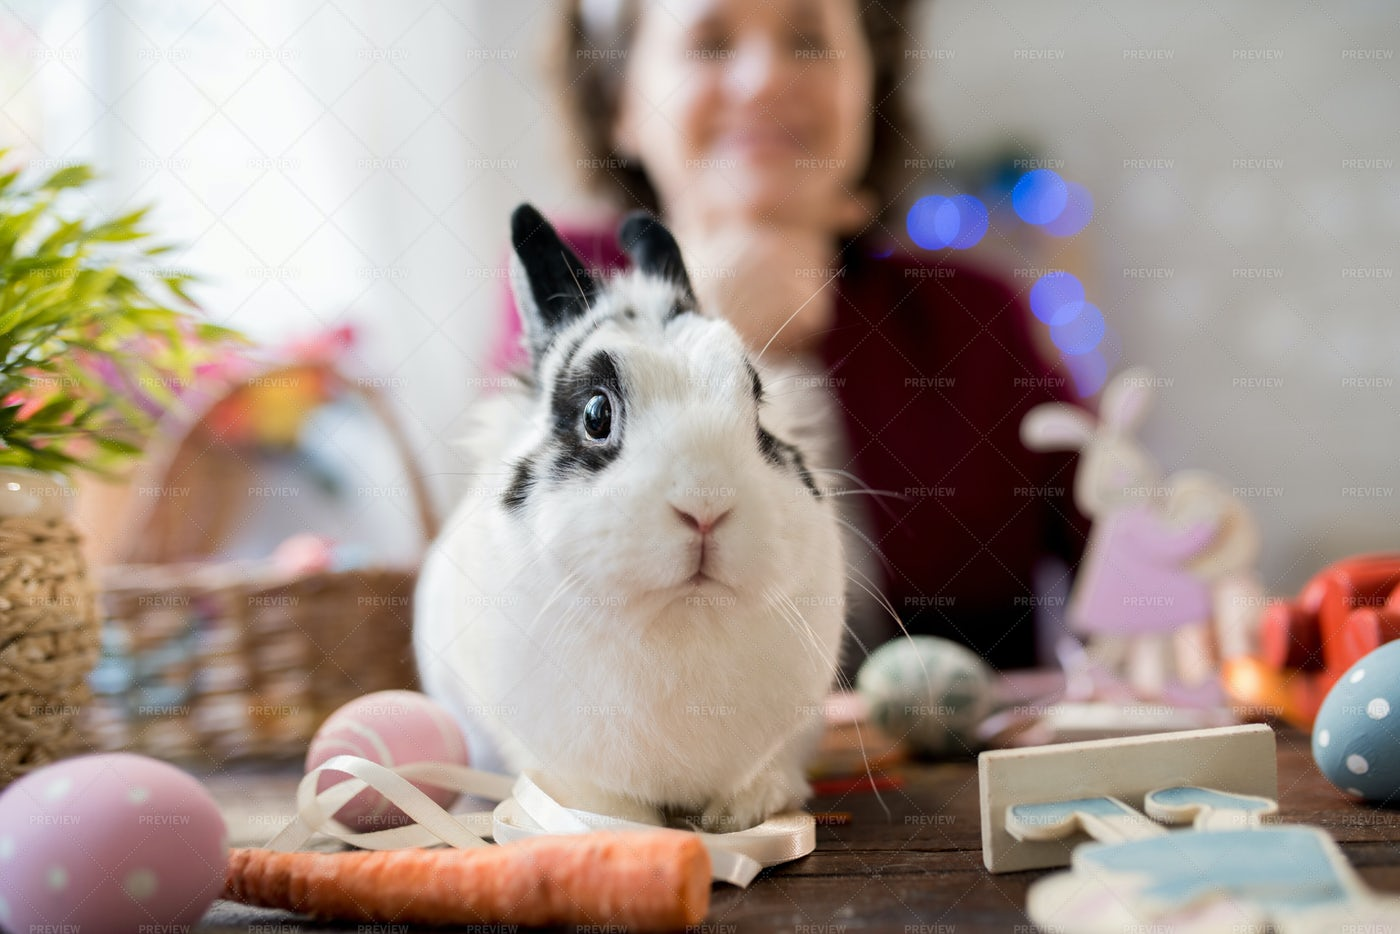 Black And White Easter Bunny: Stock Photos